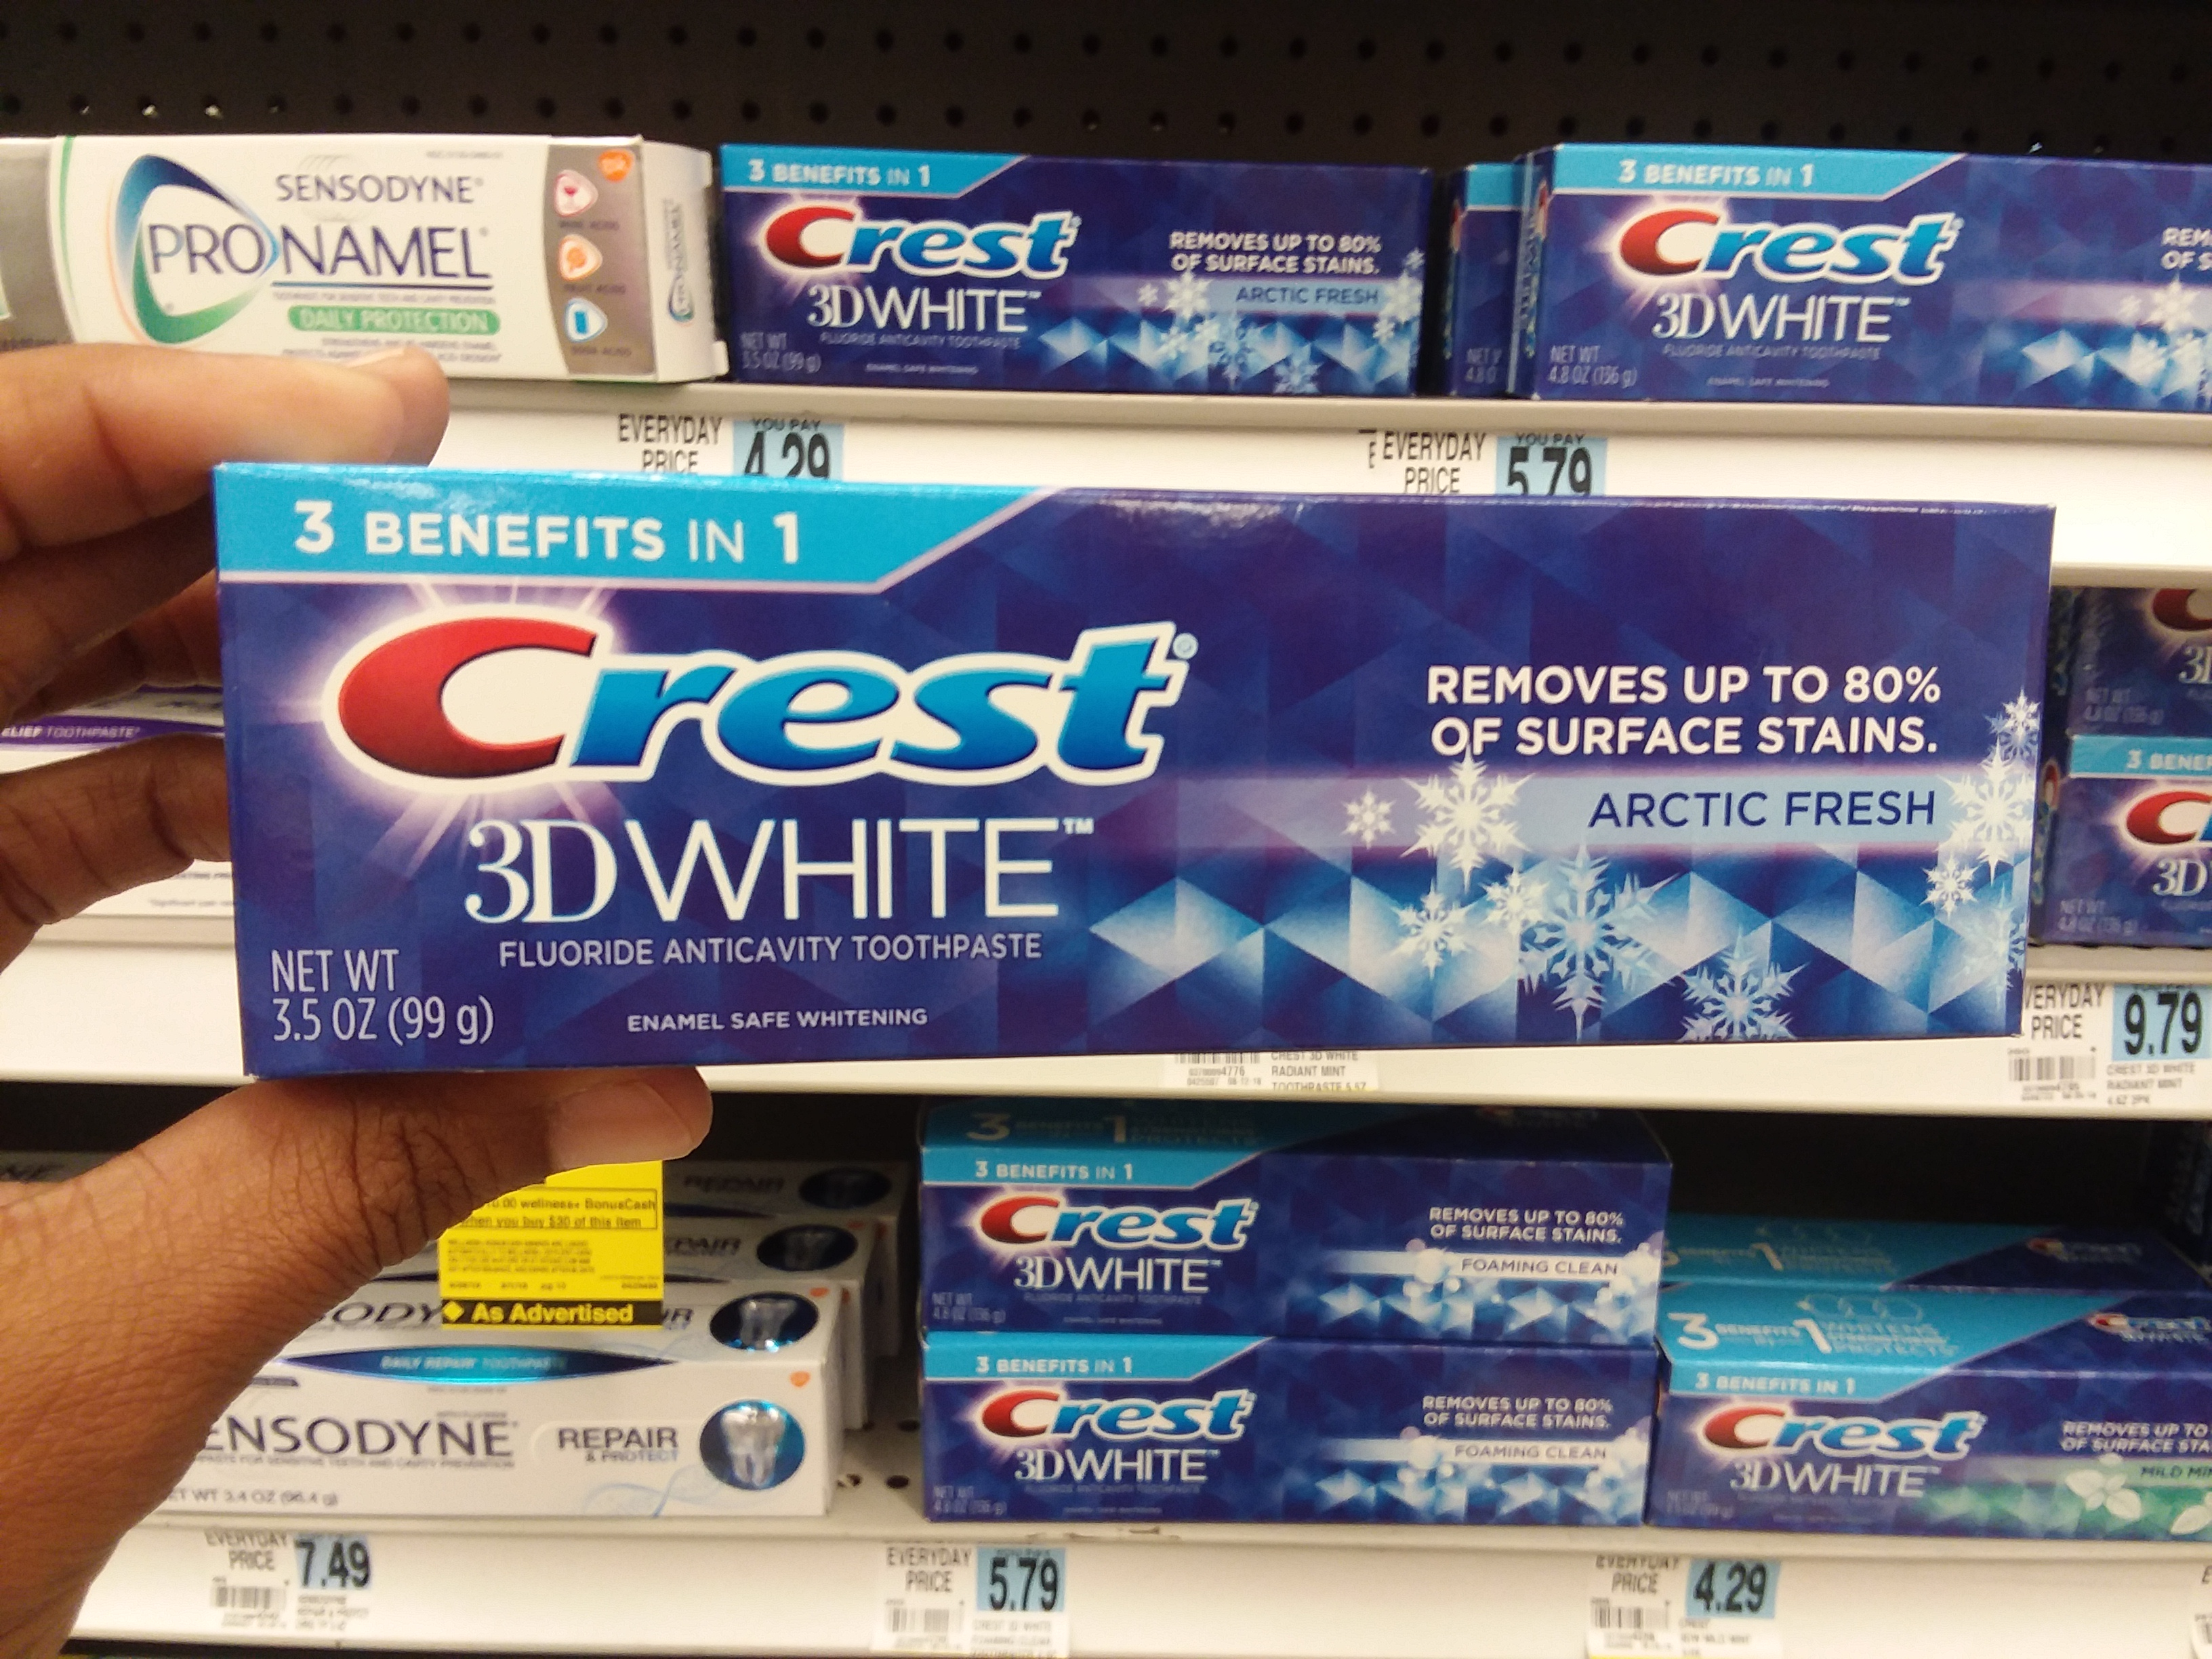 Crest 3D White at Rite Aid